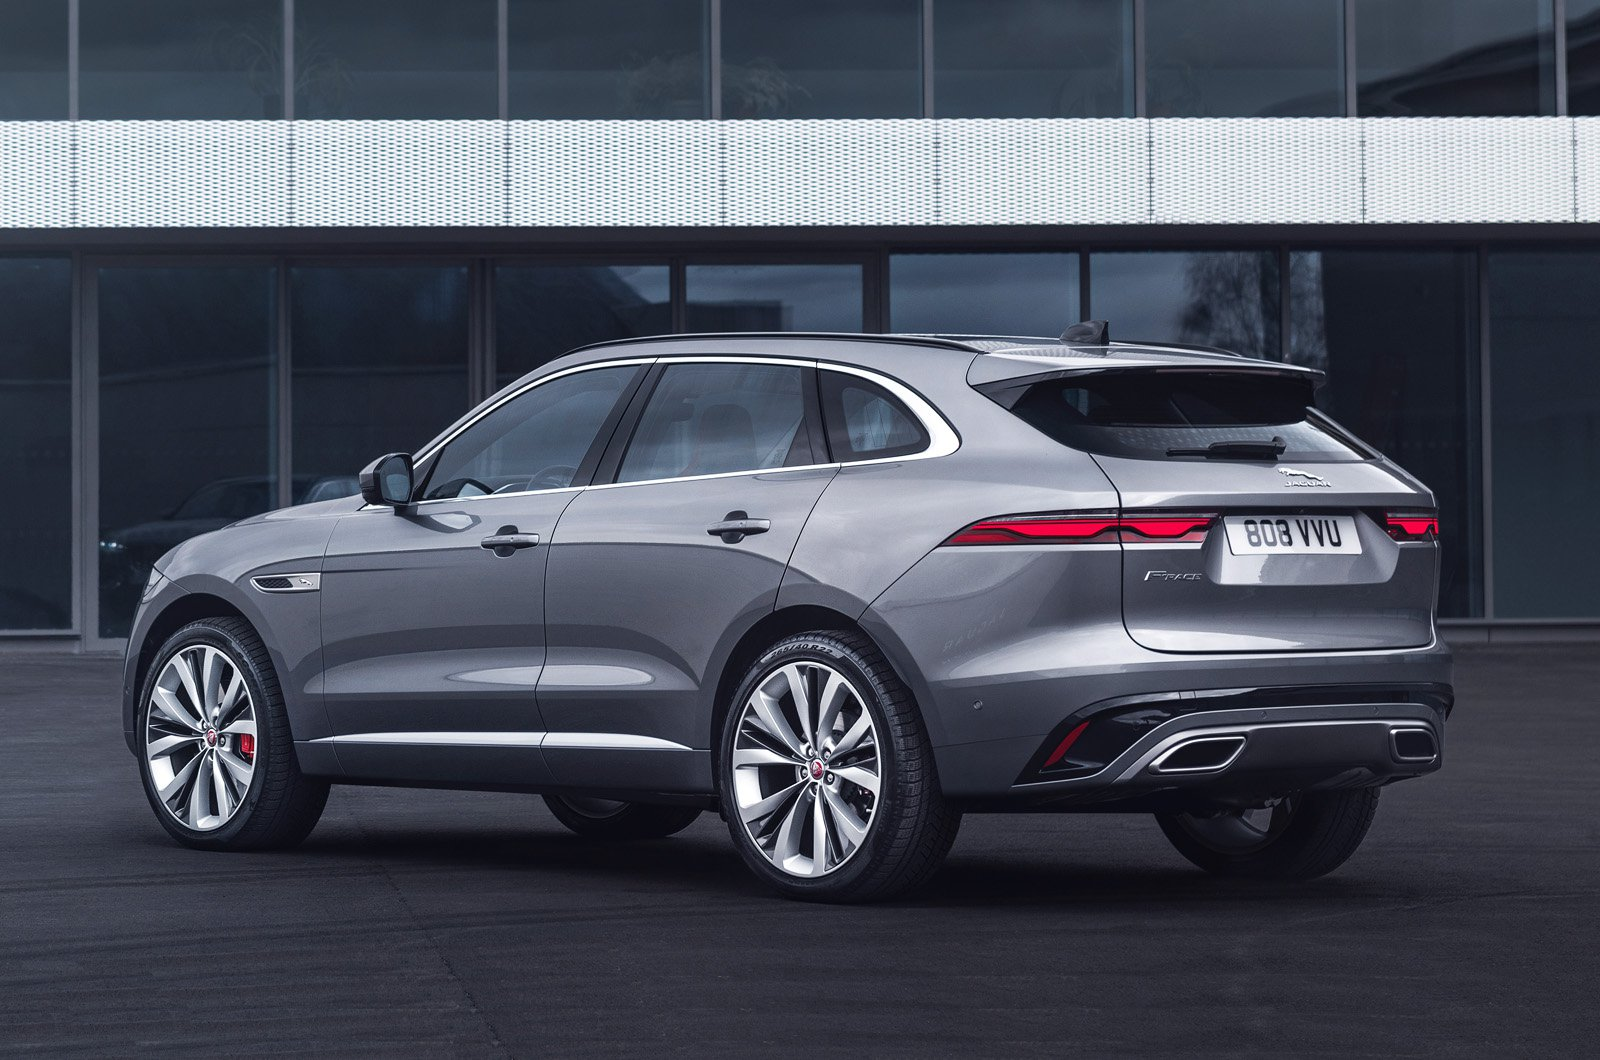 2021_jaguar_f-pace_rear_static.jpg